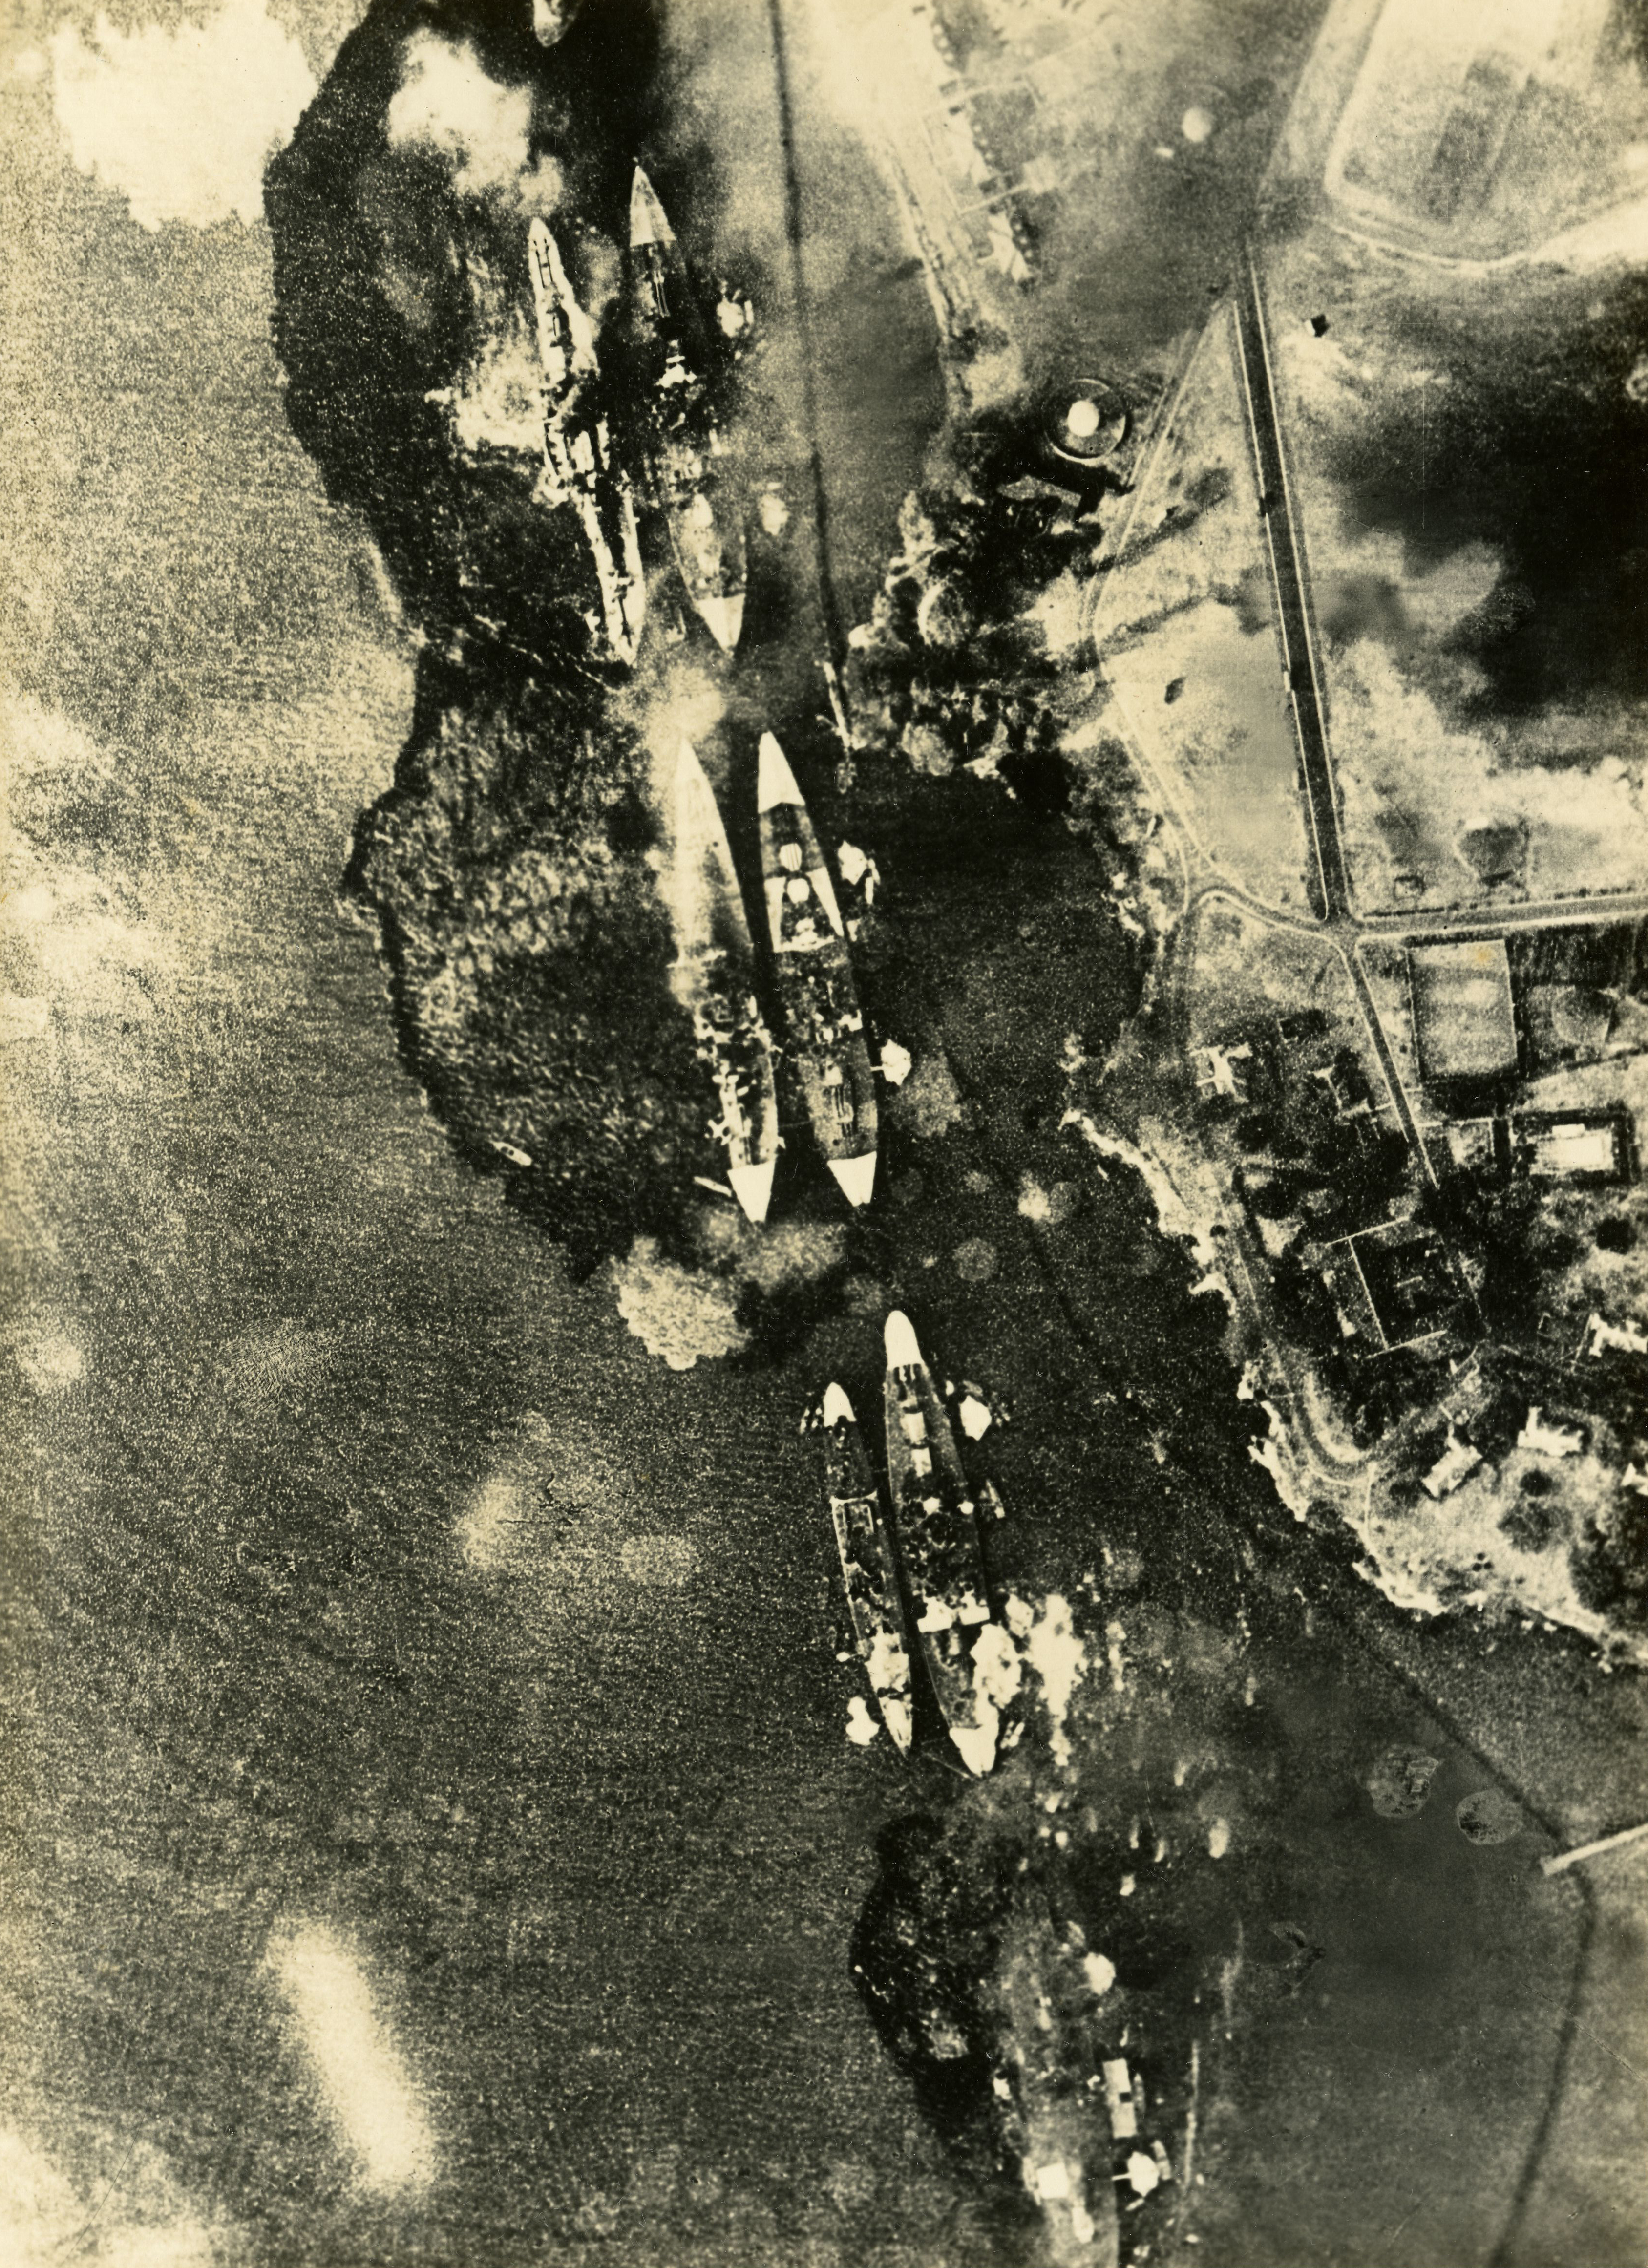 Japanese bombardment of Battleship Row, December 7, 1941 (Gilder Lehrman Col